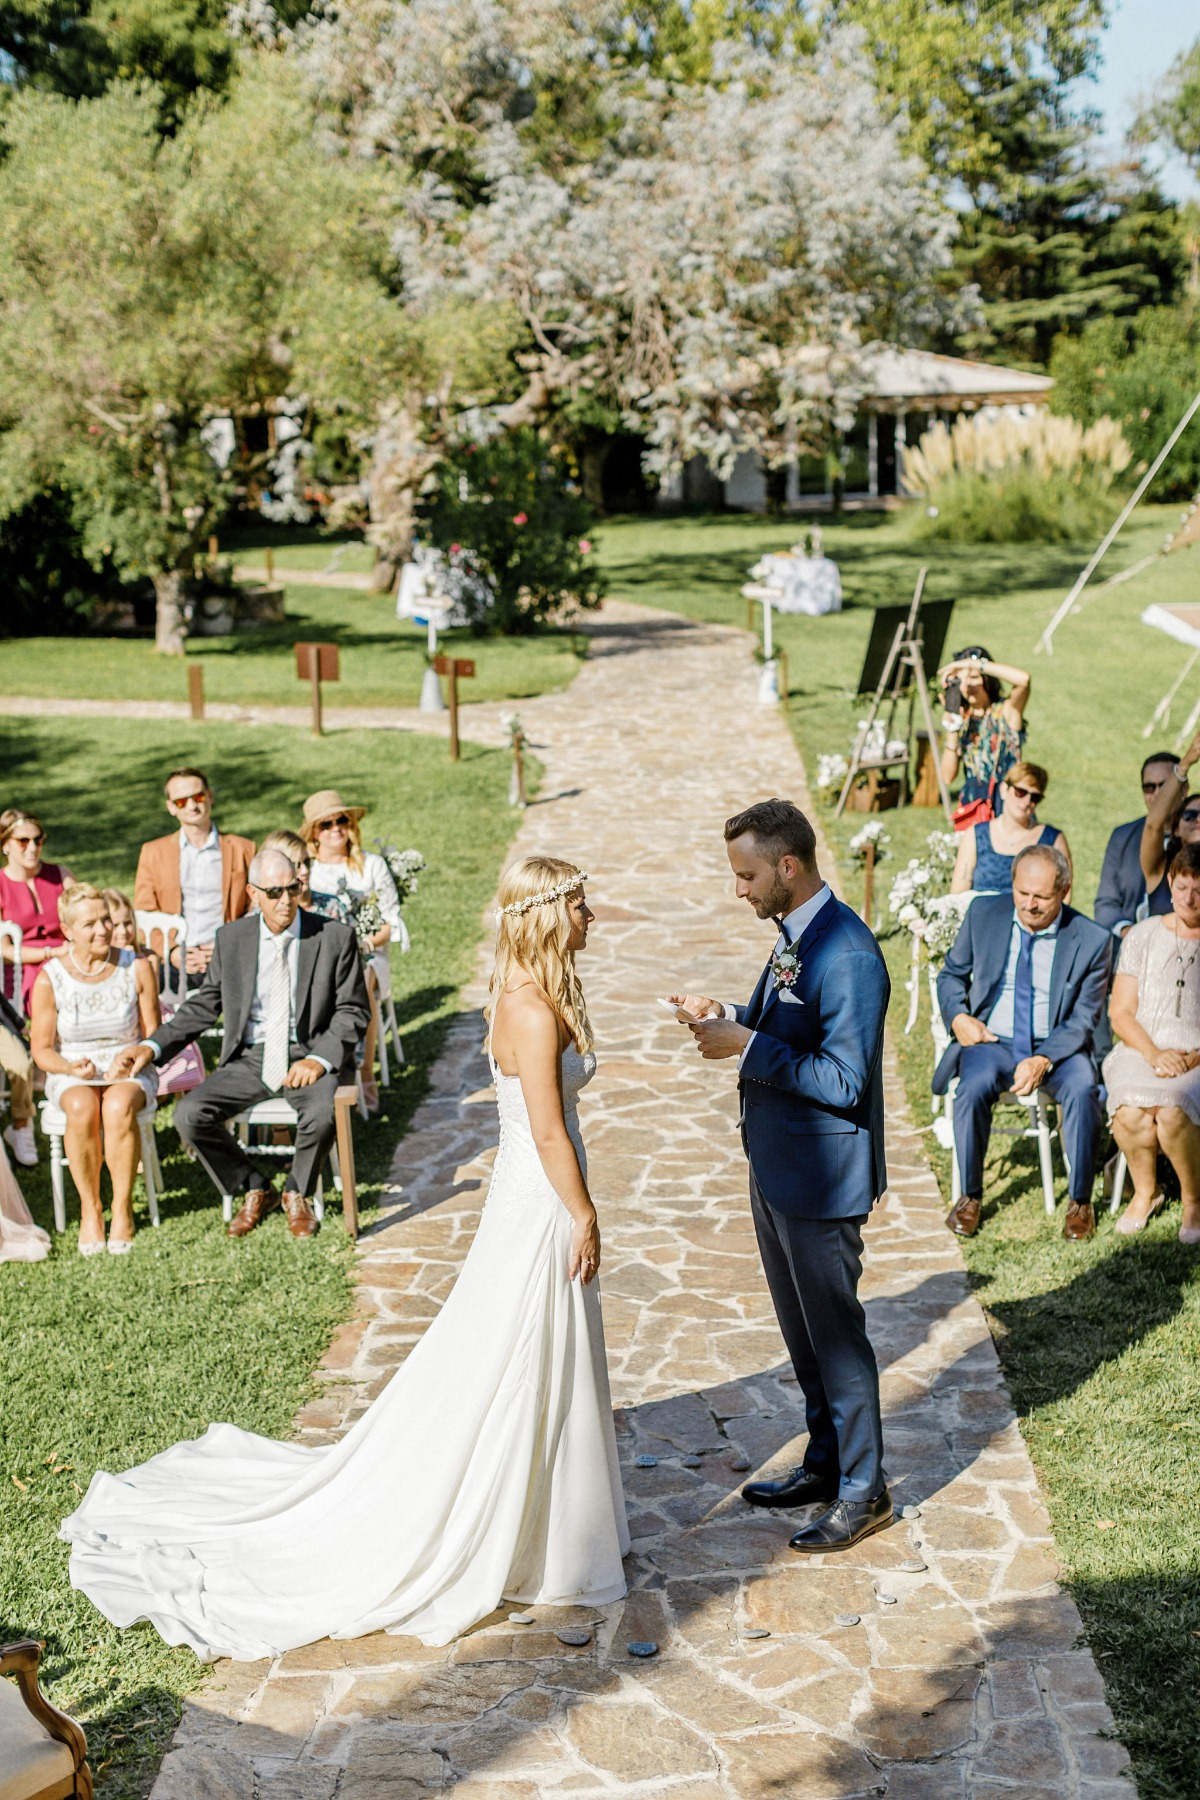 Garden wedding in Saint Tropez